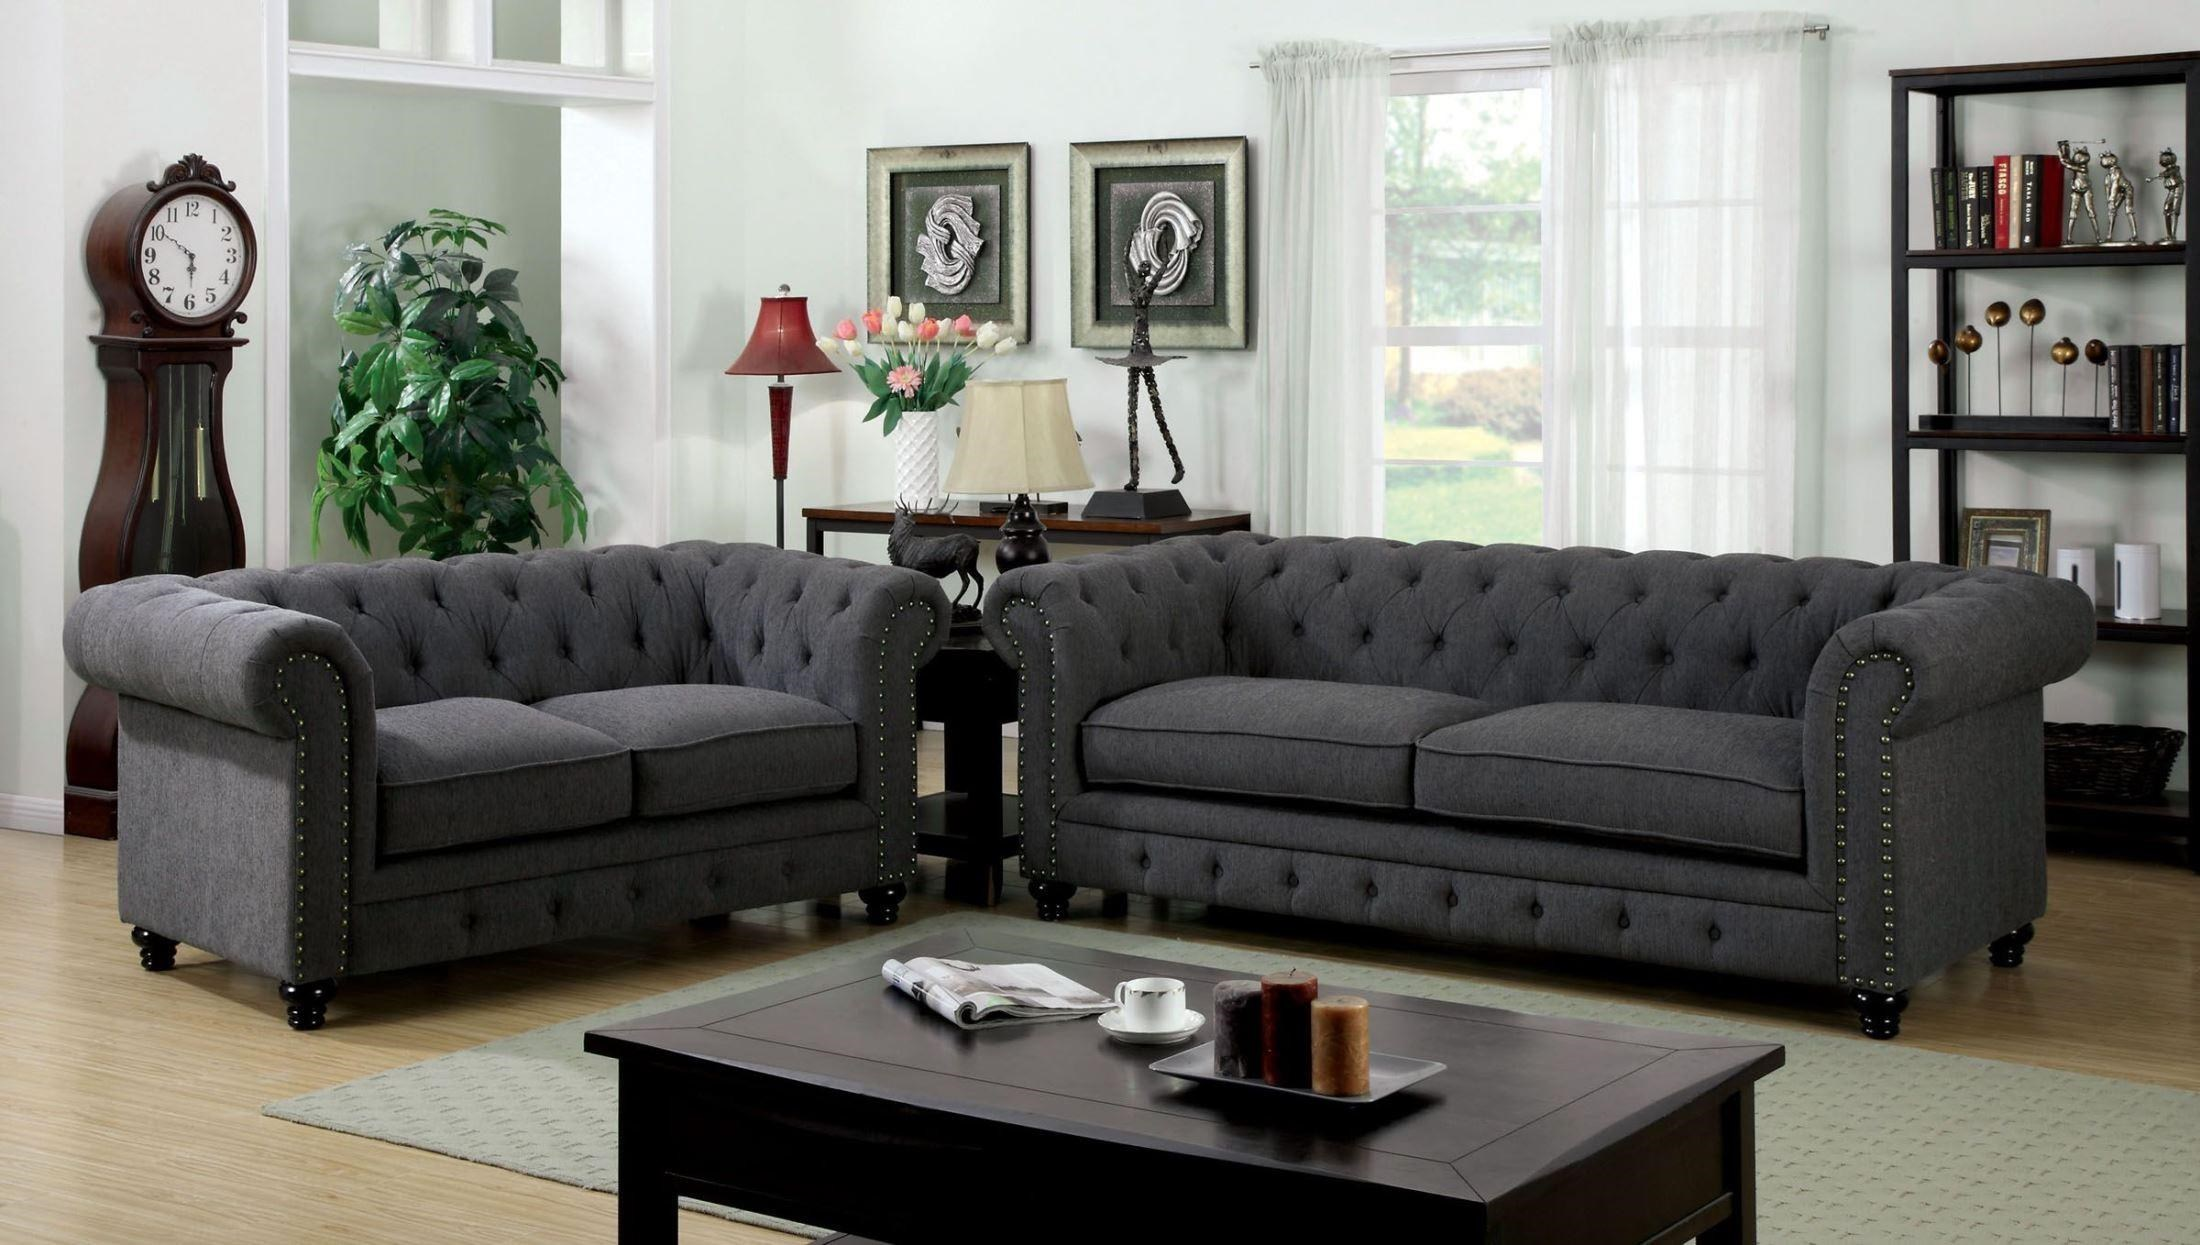 Furniture Of America Import Direct Stanford Cm6269gy Lv